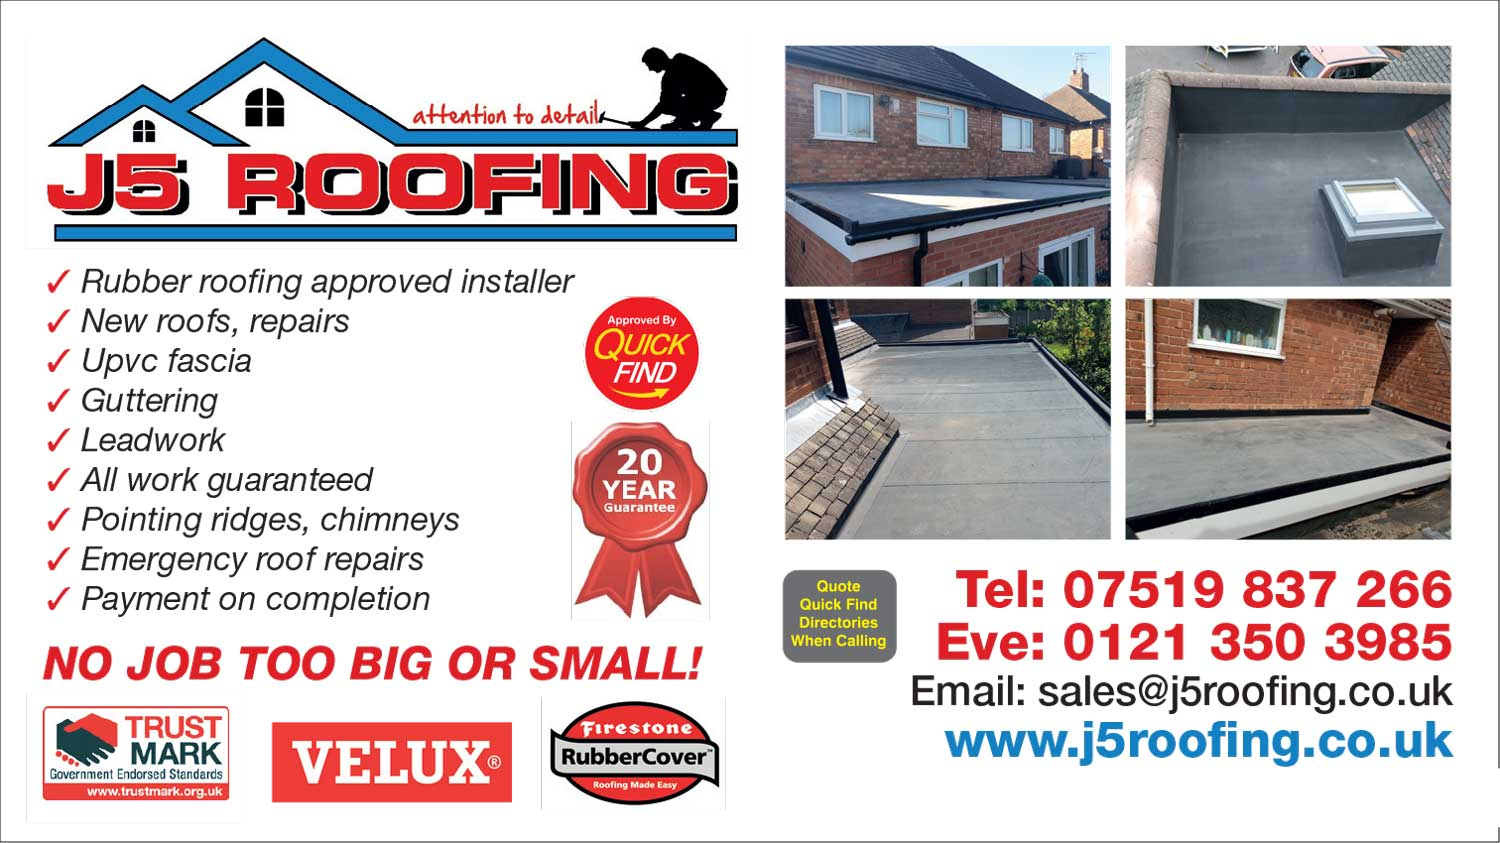 J5 Roofing